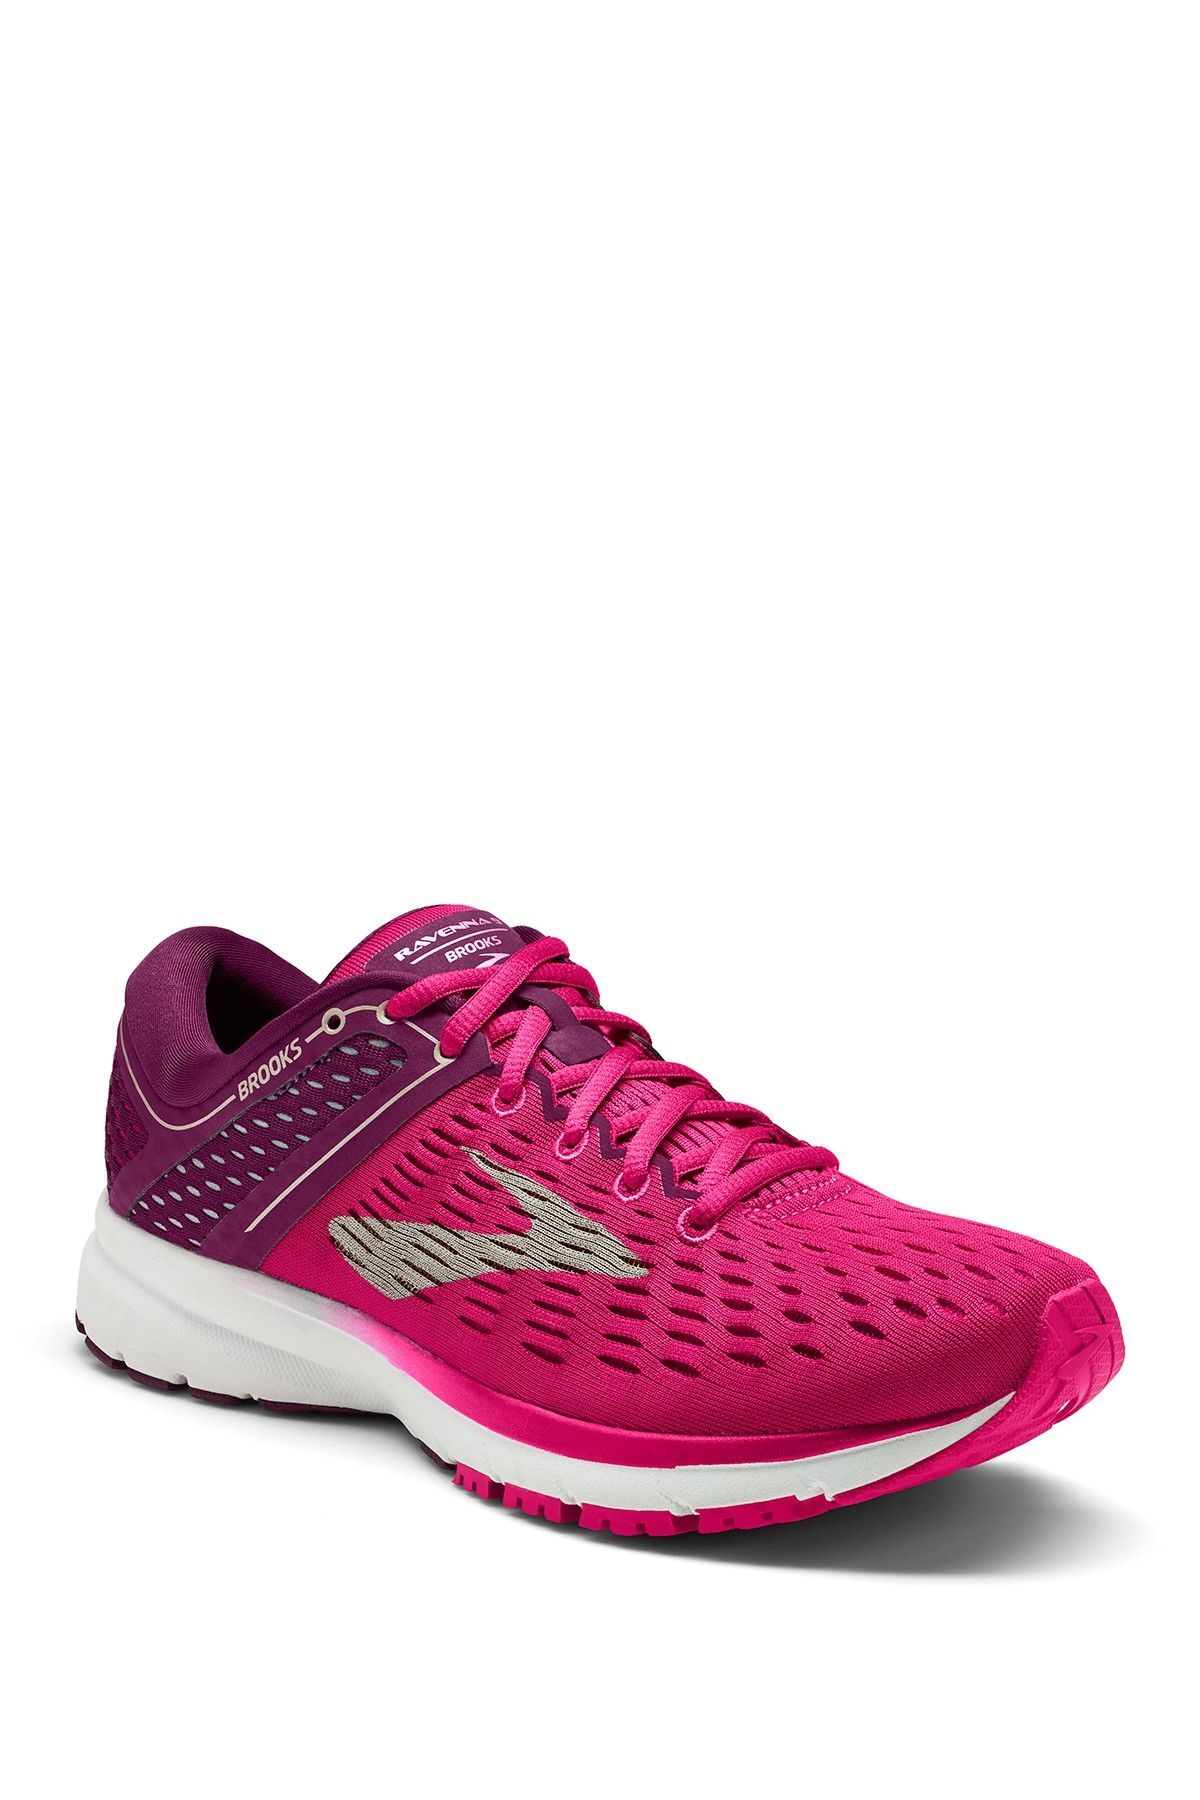 Brooks Ravenna 9 Running Shoe Wide Width Available